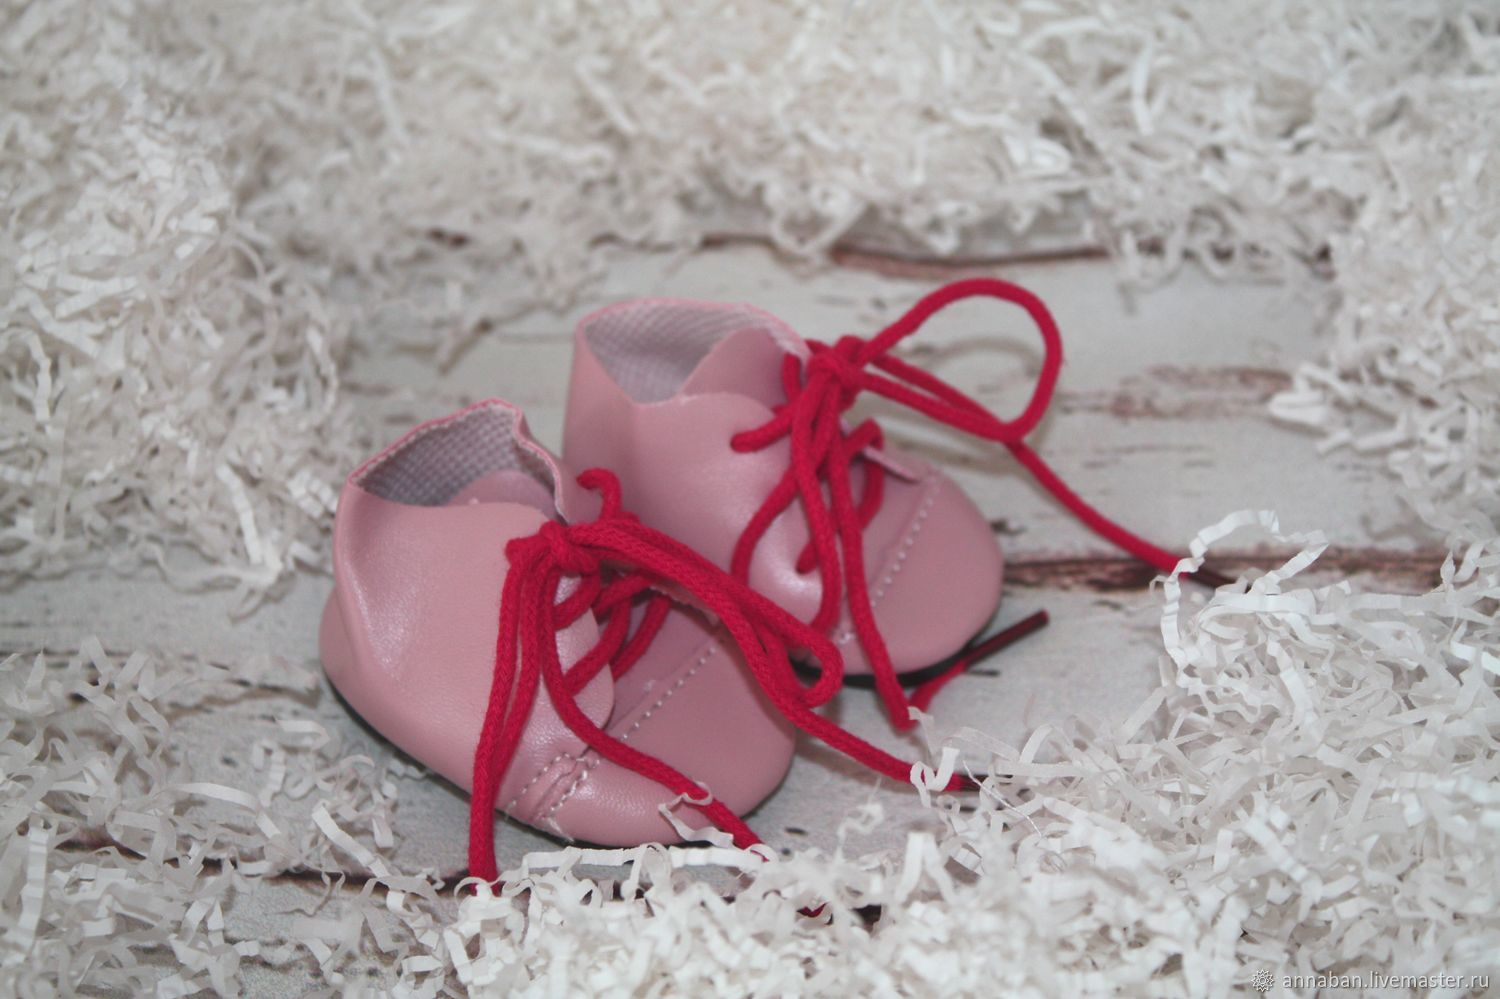 shoes for dolls. shoes 7 cm, Materials for creativity, Kaluga, Фото №1